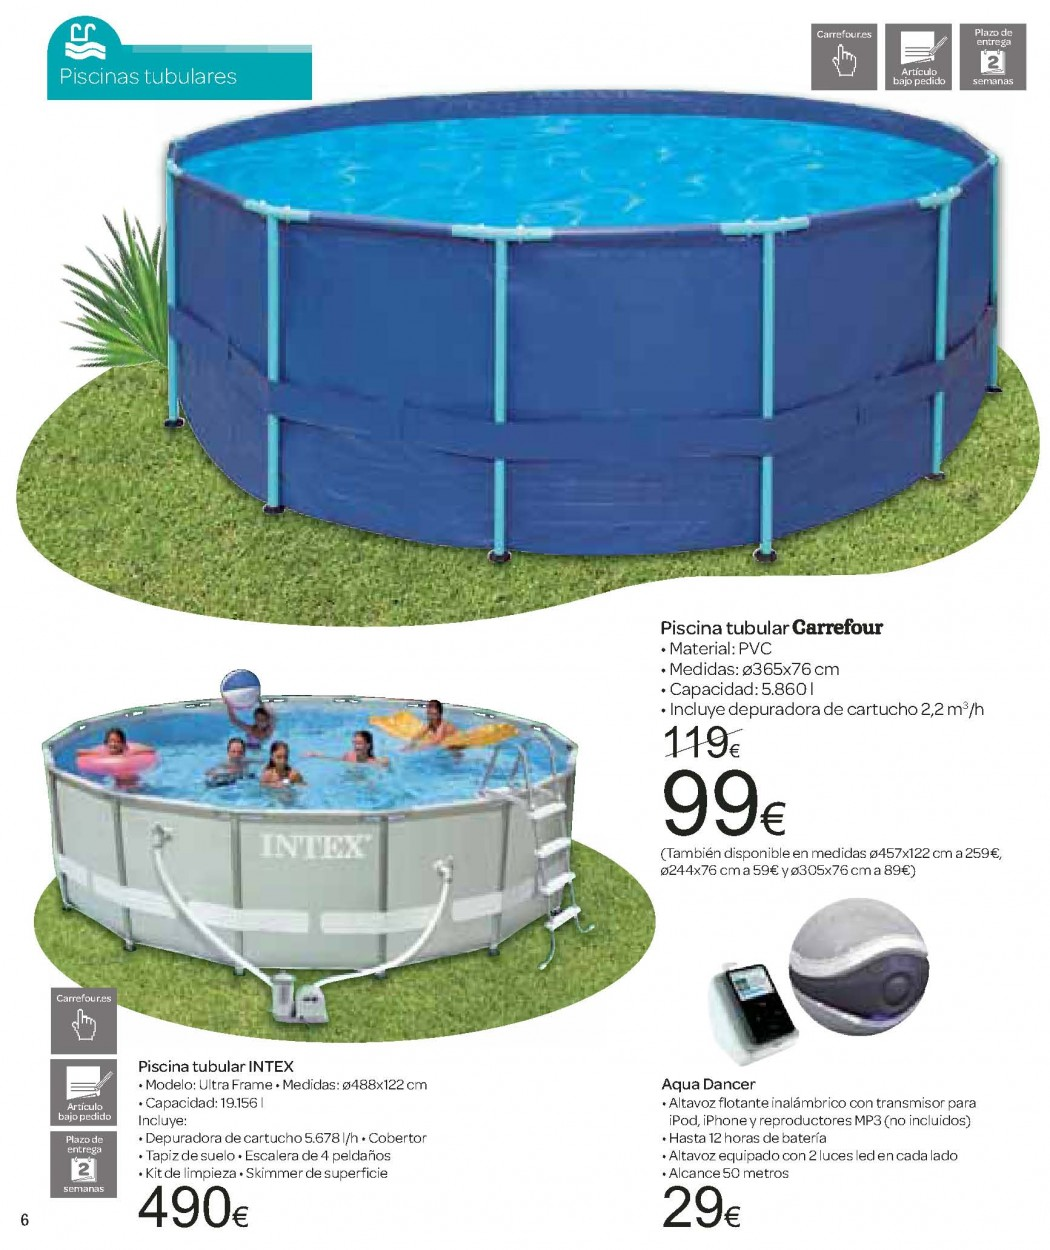 Catalogo carrefour junio 2012 especial piscinas y jardin for Piscinas carrefour